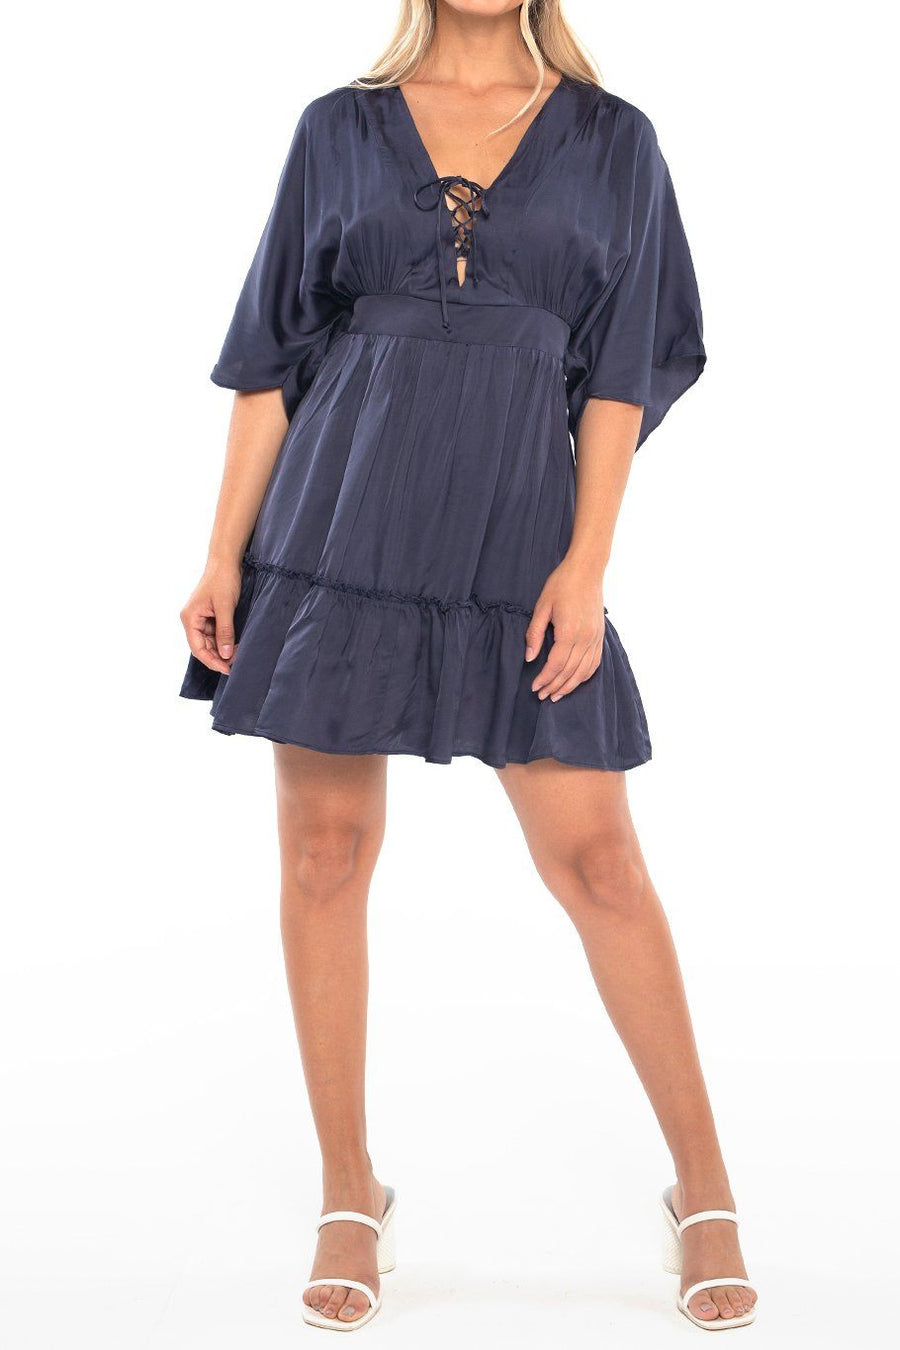 Lisbon Layered Mini Dress - Steel Blue - Shore